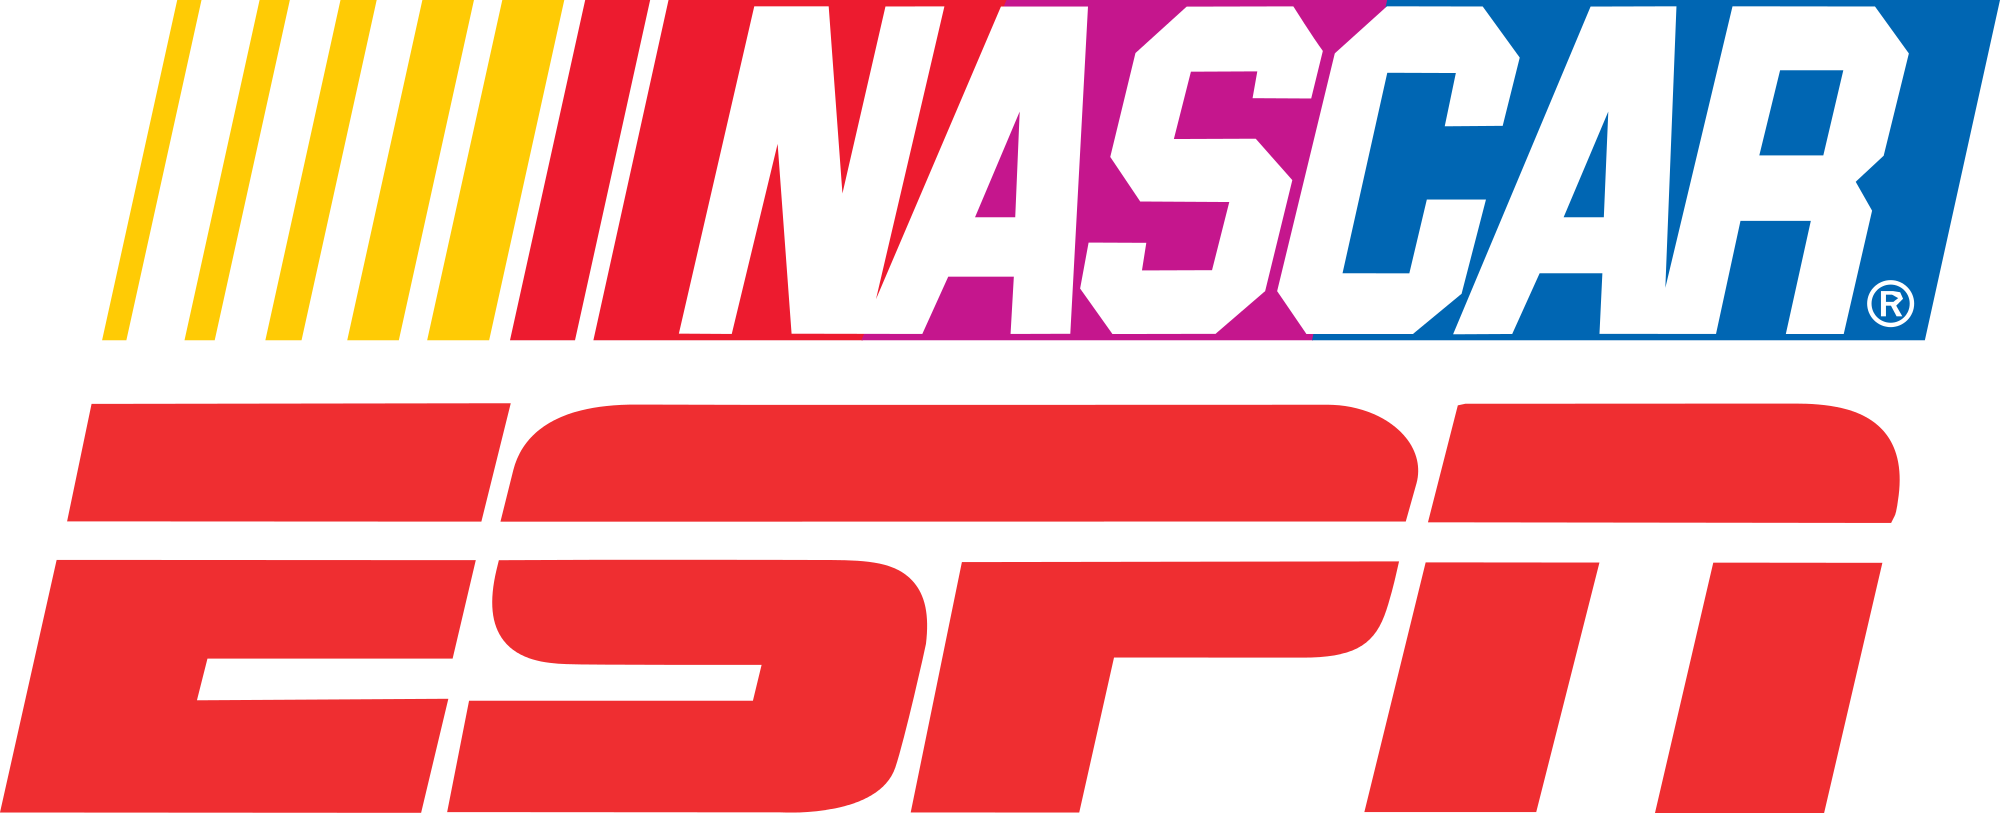 Nascar logo png. File on espn svg